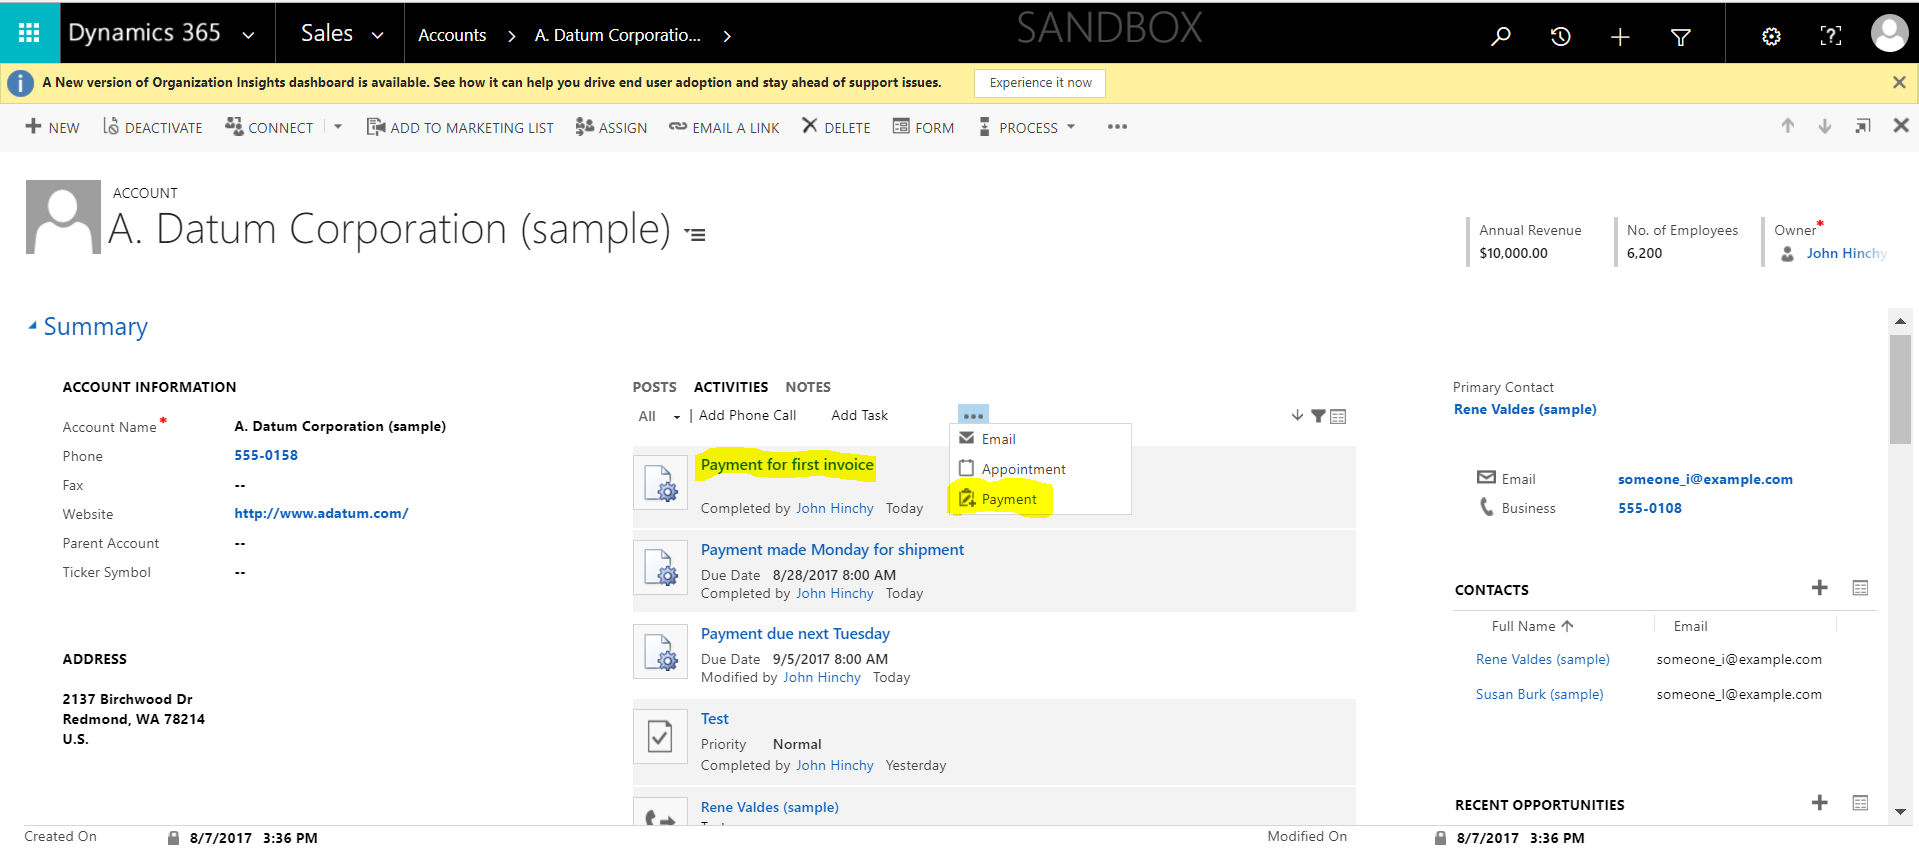 Create Custom Activity Entities in Dynamics 365 for Sales